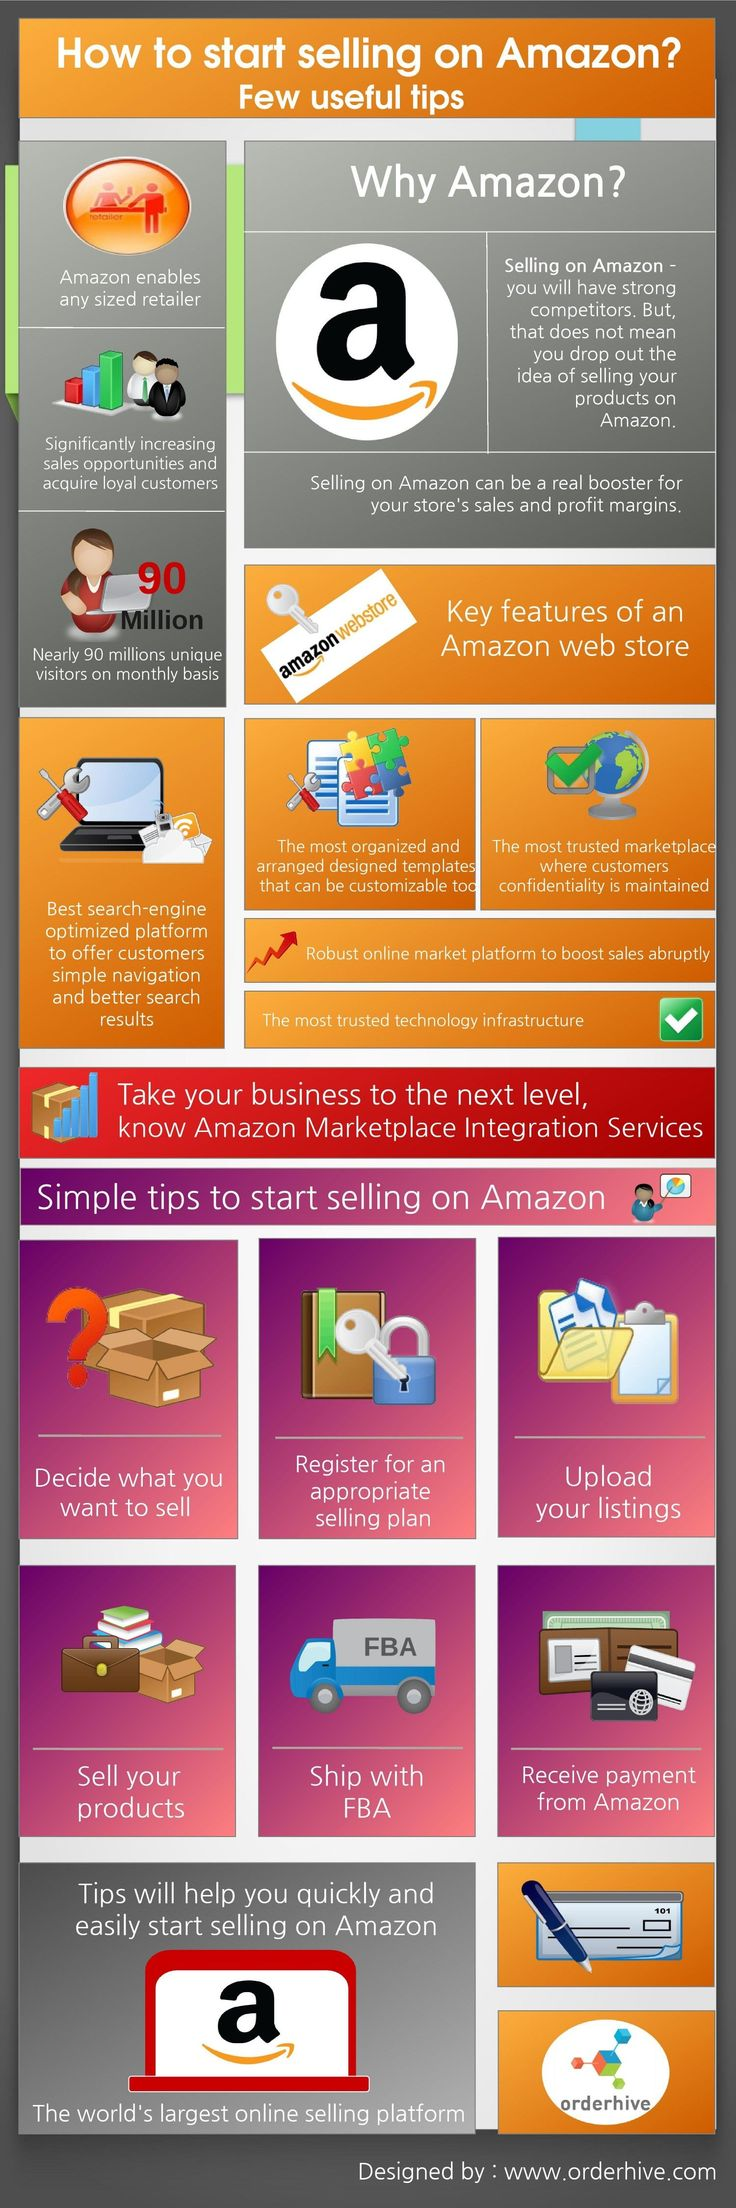 An easy to follow step by step guide showing you the process of sourcing and selling products on Amazon: http://www.amazon.com/dp/B0192EWPZM